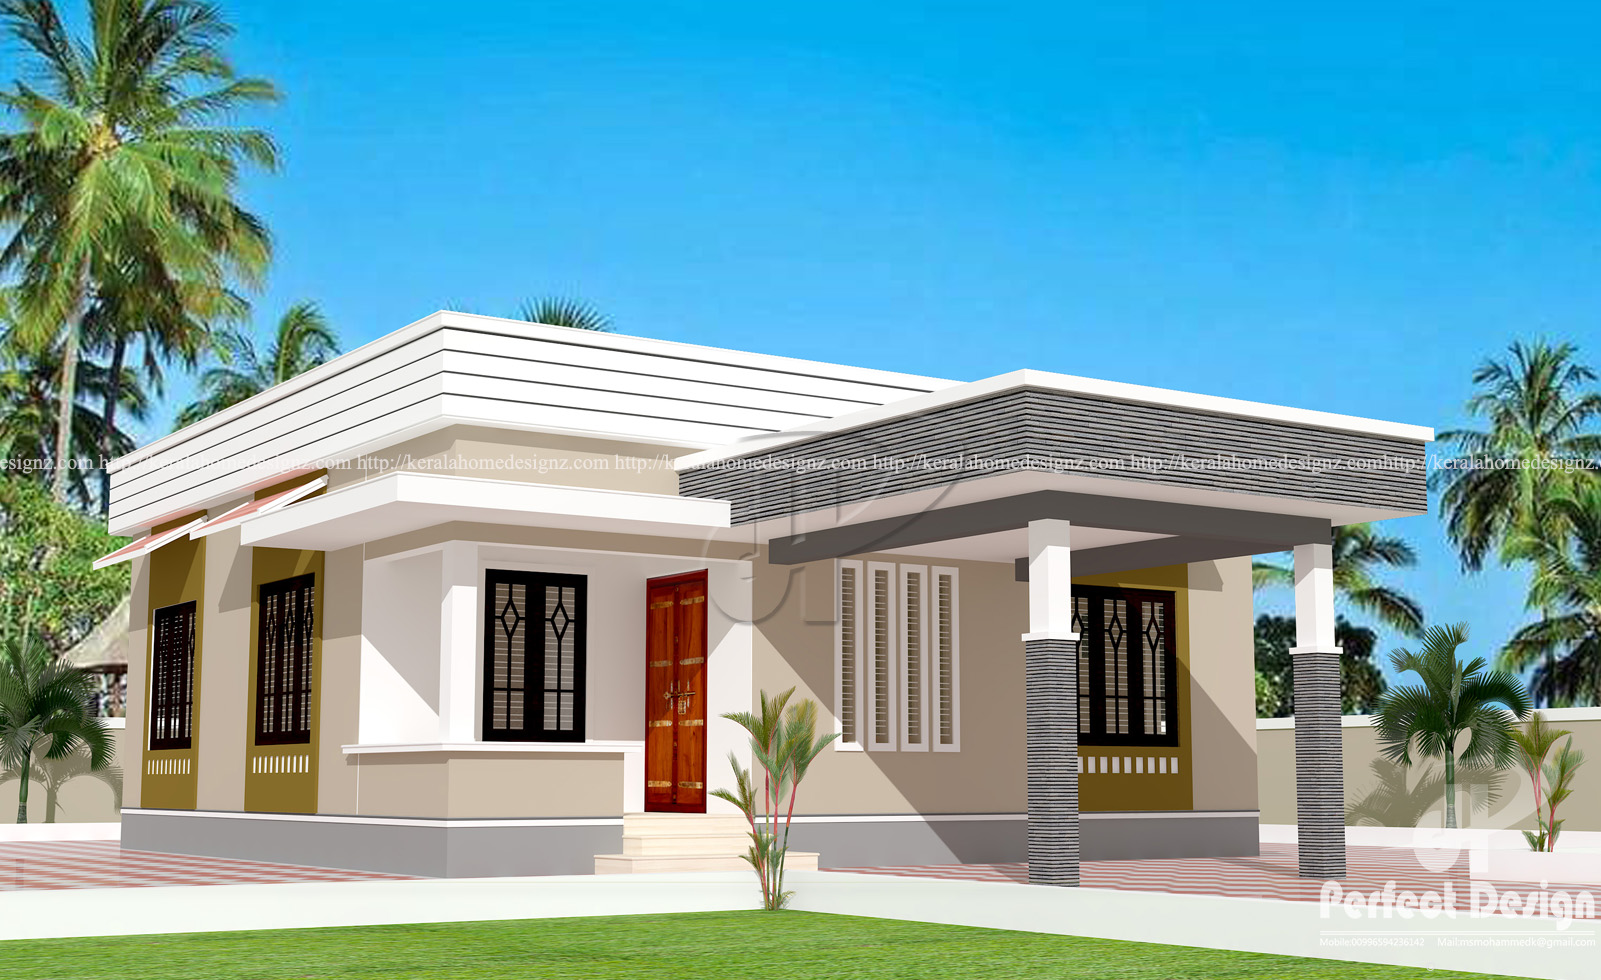 829 sq ft low cost home designs kerala home design for The house design